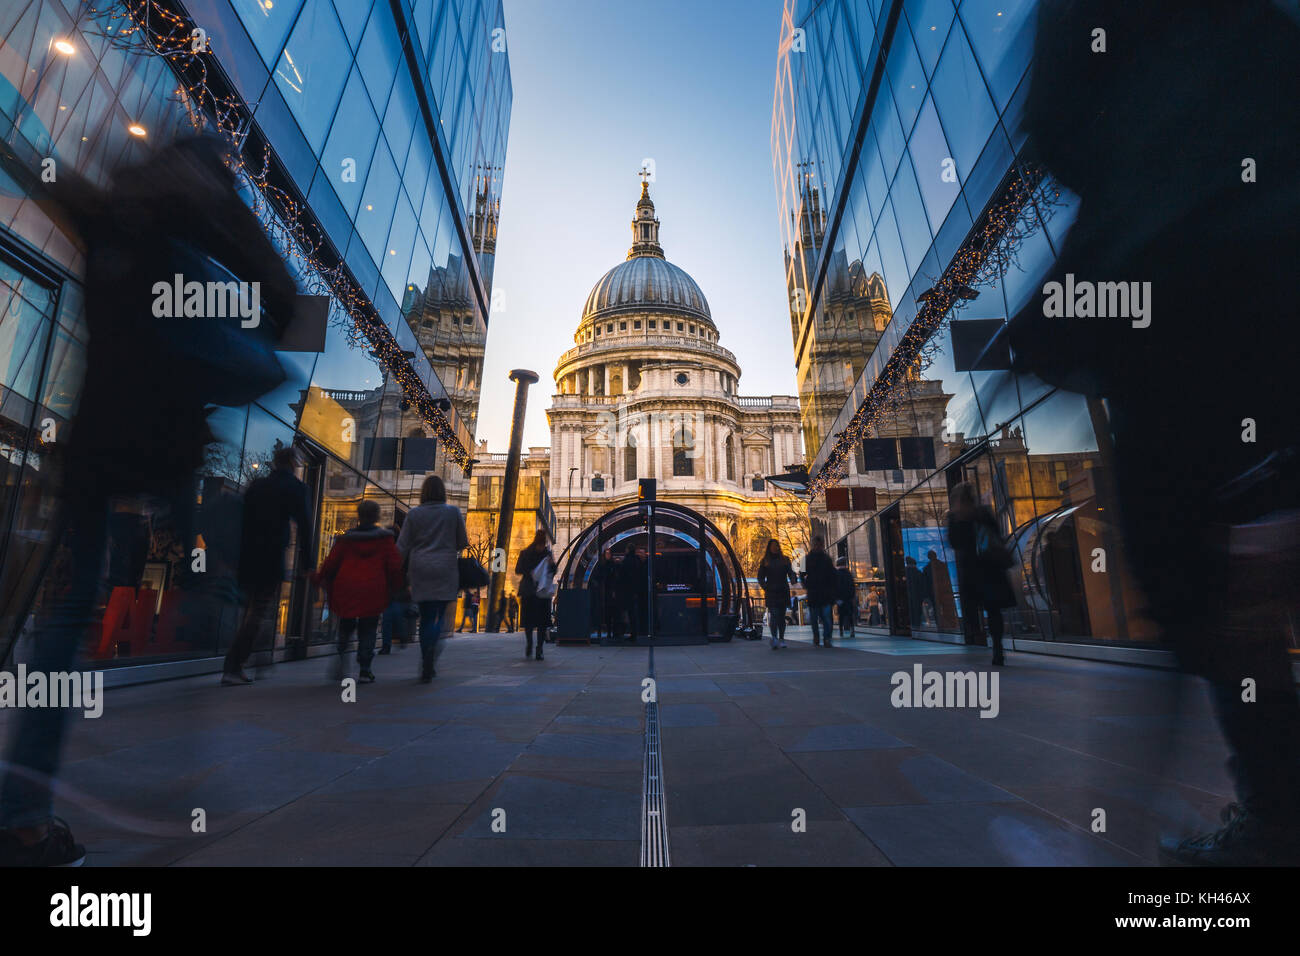 View of St. Paul's Cathedral from One New Change Mall, London, England, UK - Stock Image